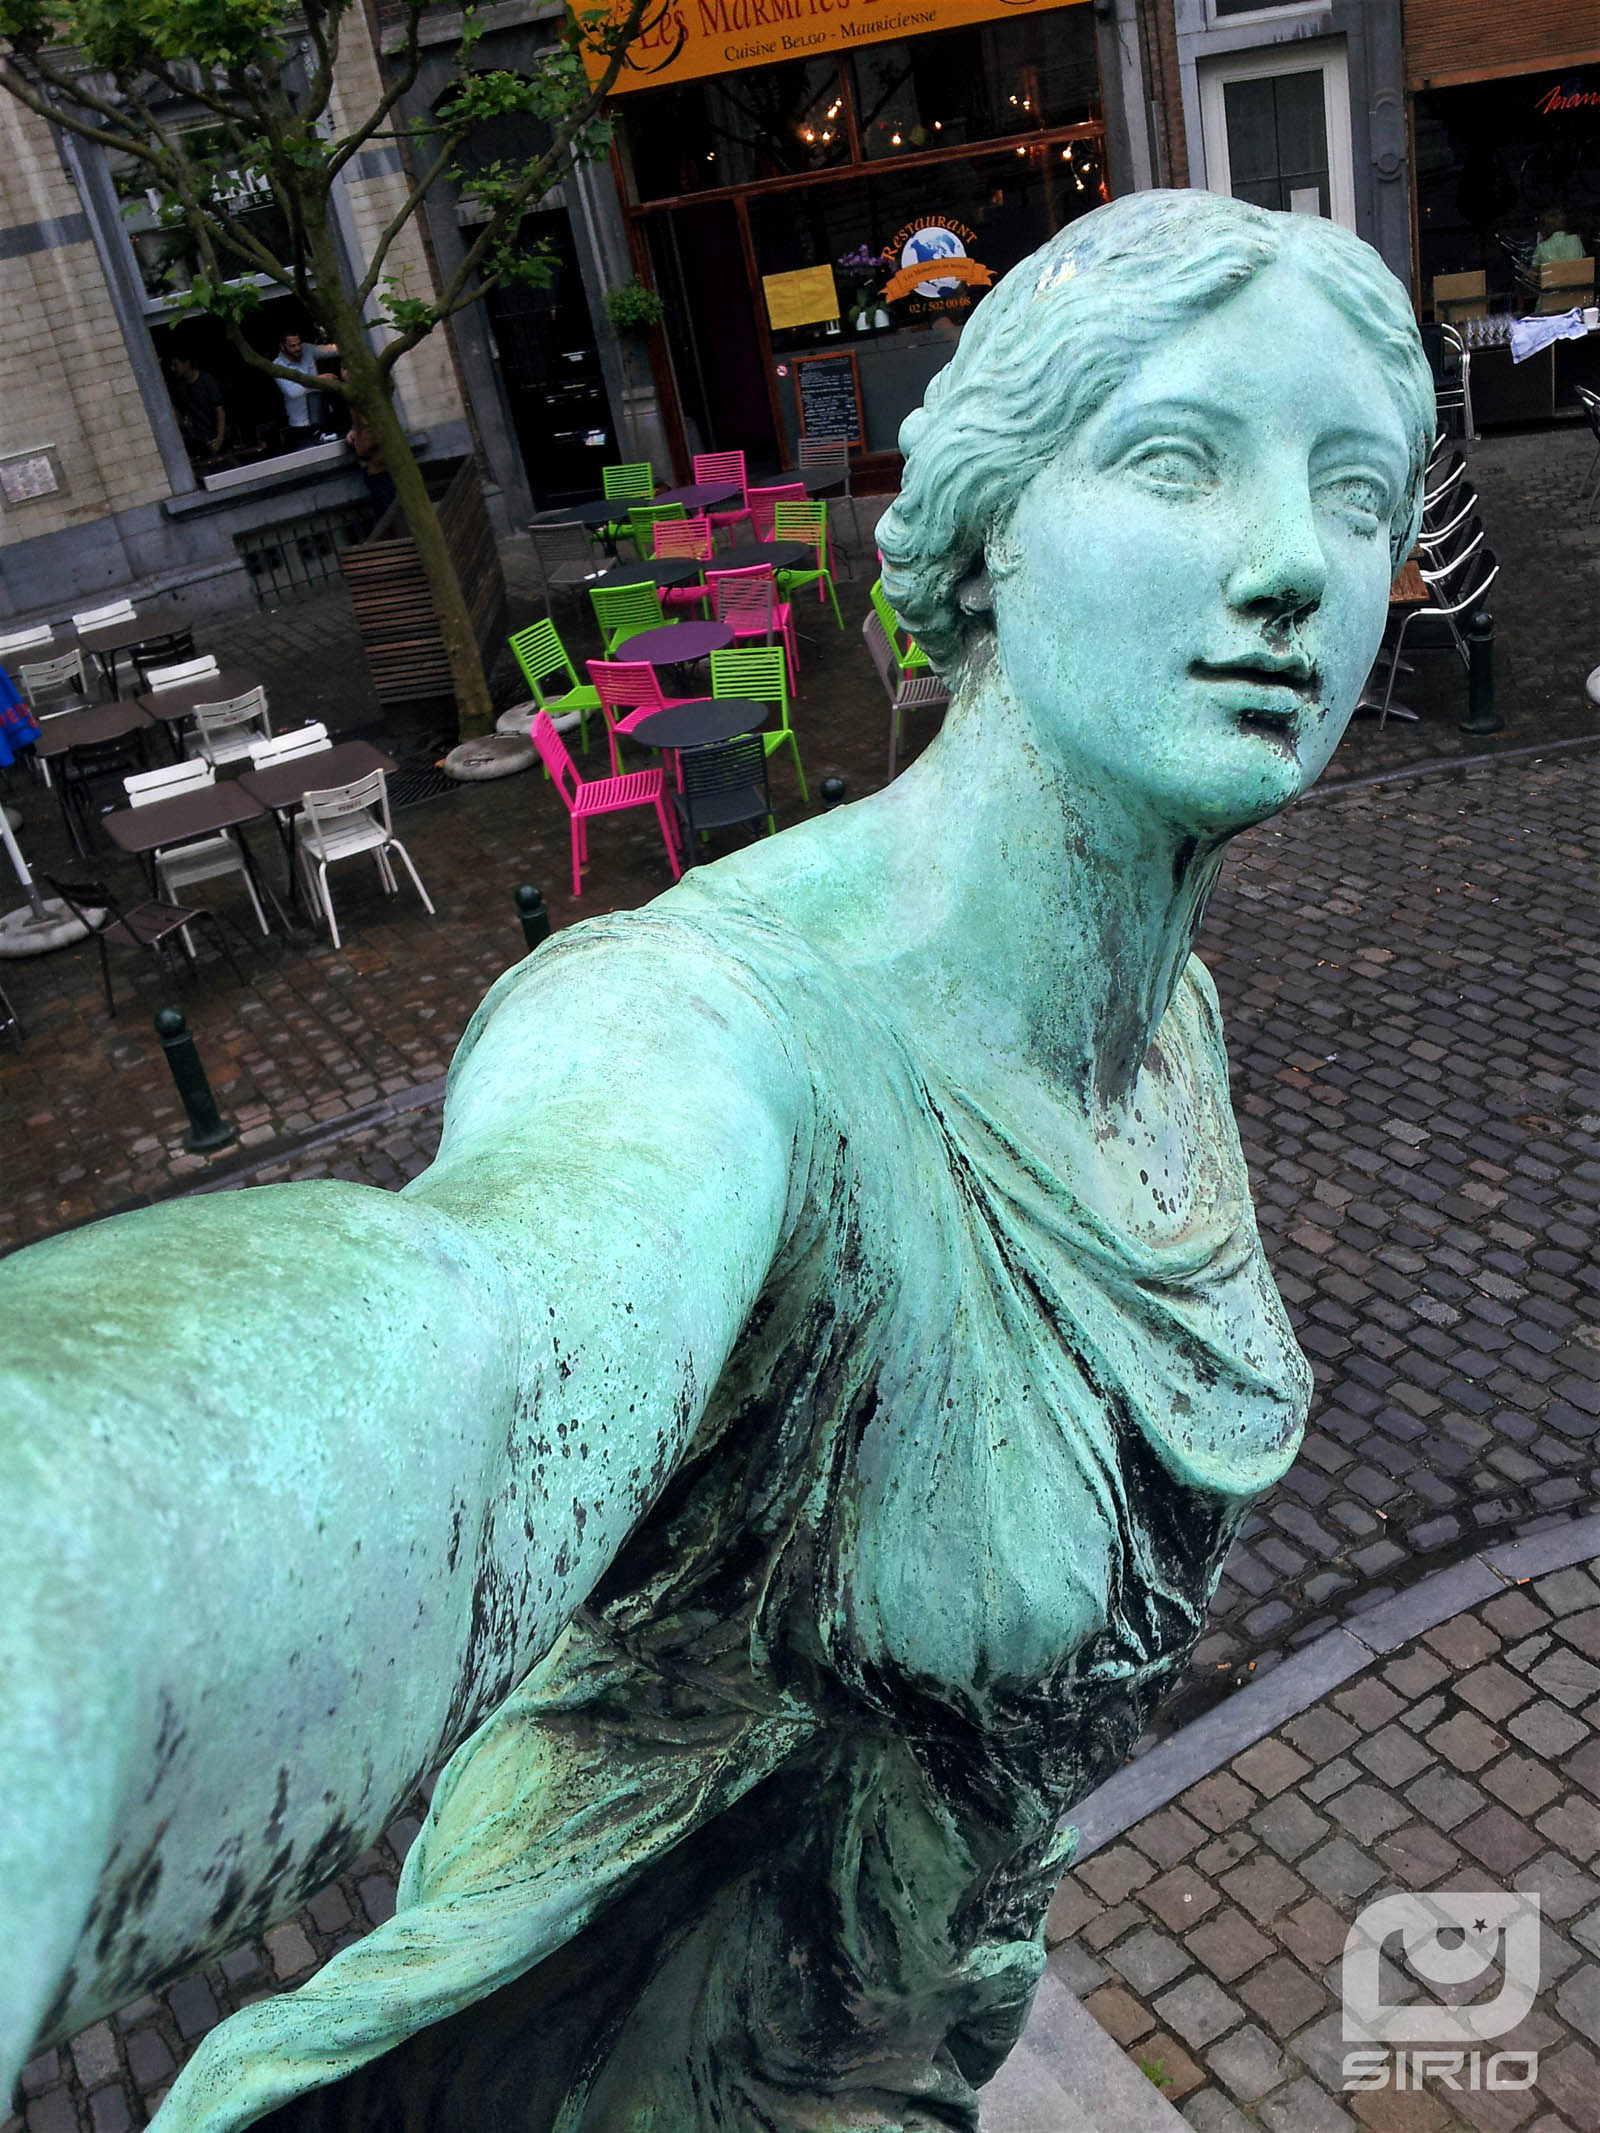 Statuary Selfie girl in front of a pub